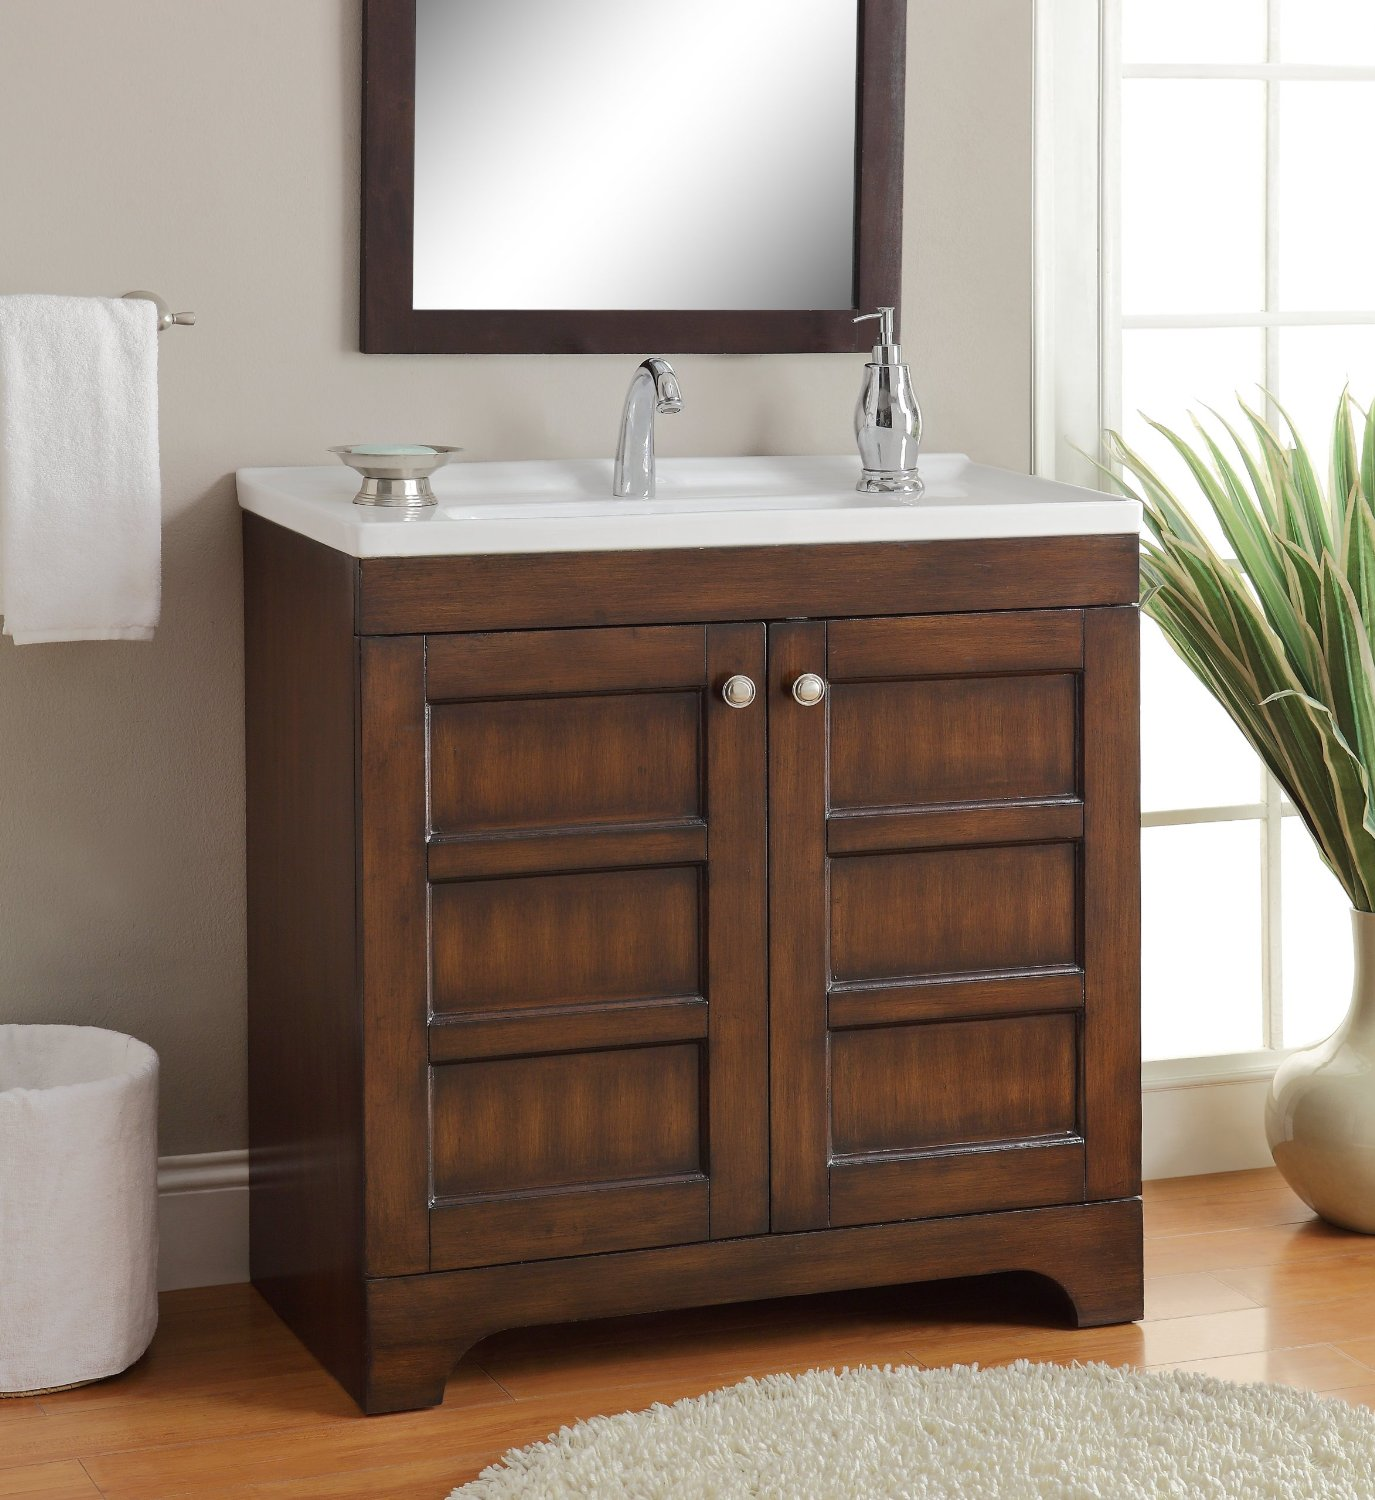 Adelina 32 inch Contemporary Bathroom Vanity, Vitreous china top ...